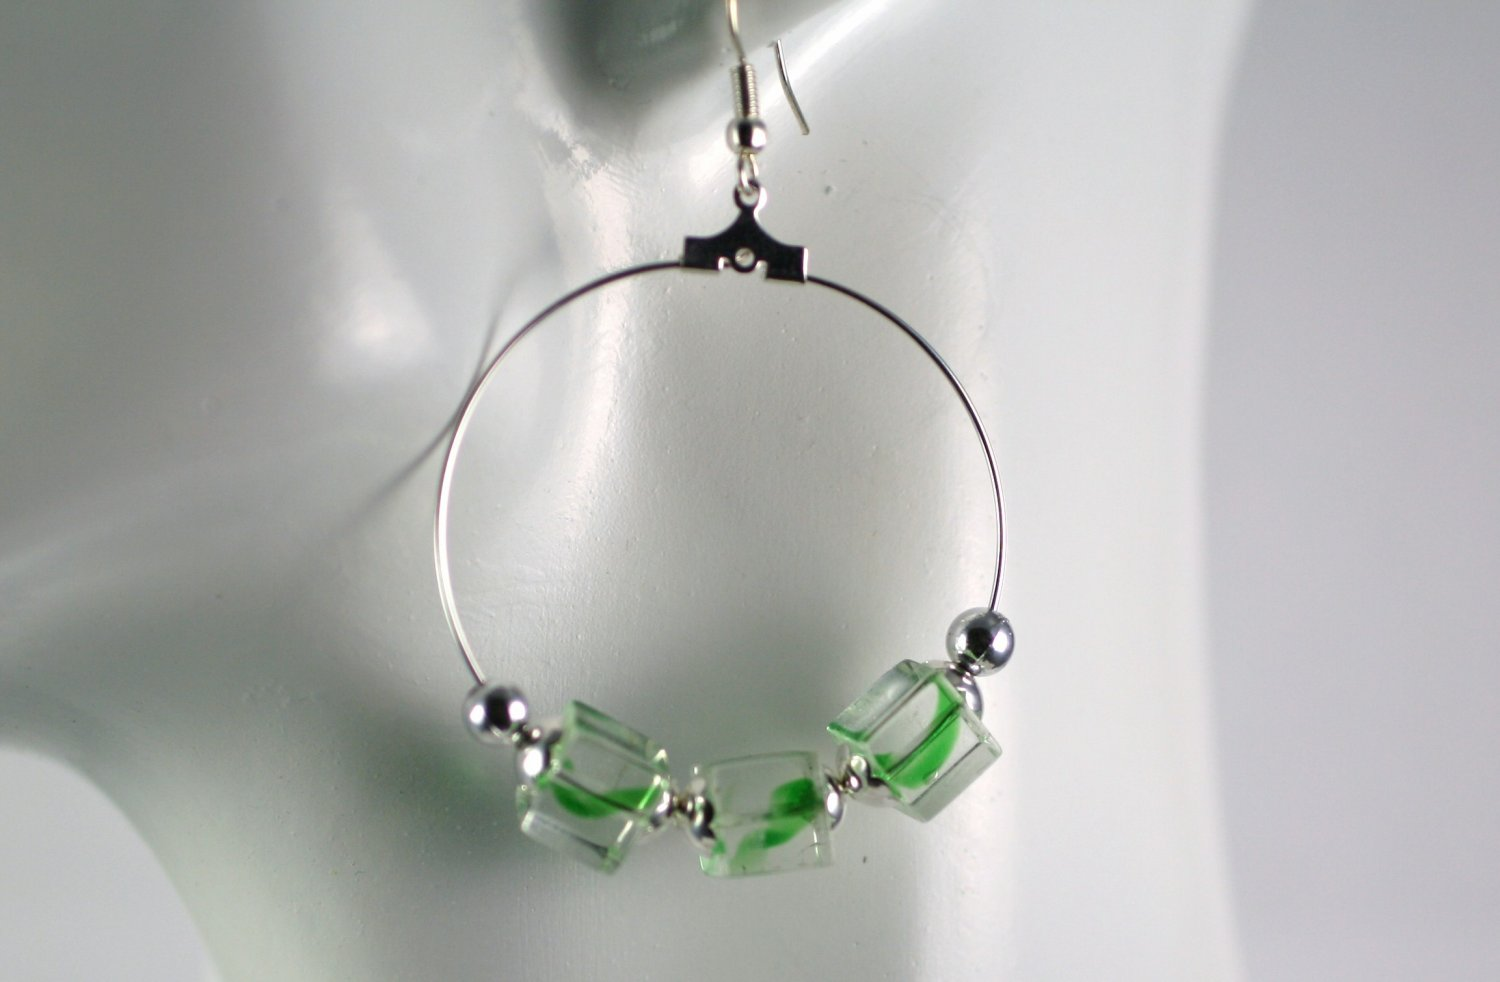 Silver Hoop Earrings with Green Swirl Cube Beads 1.5 in. Diameter  Handcrafted Jewelry